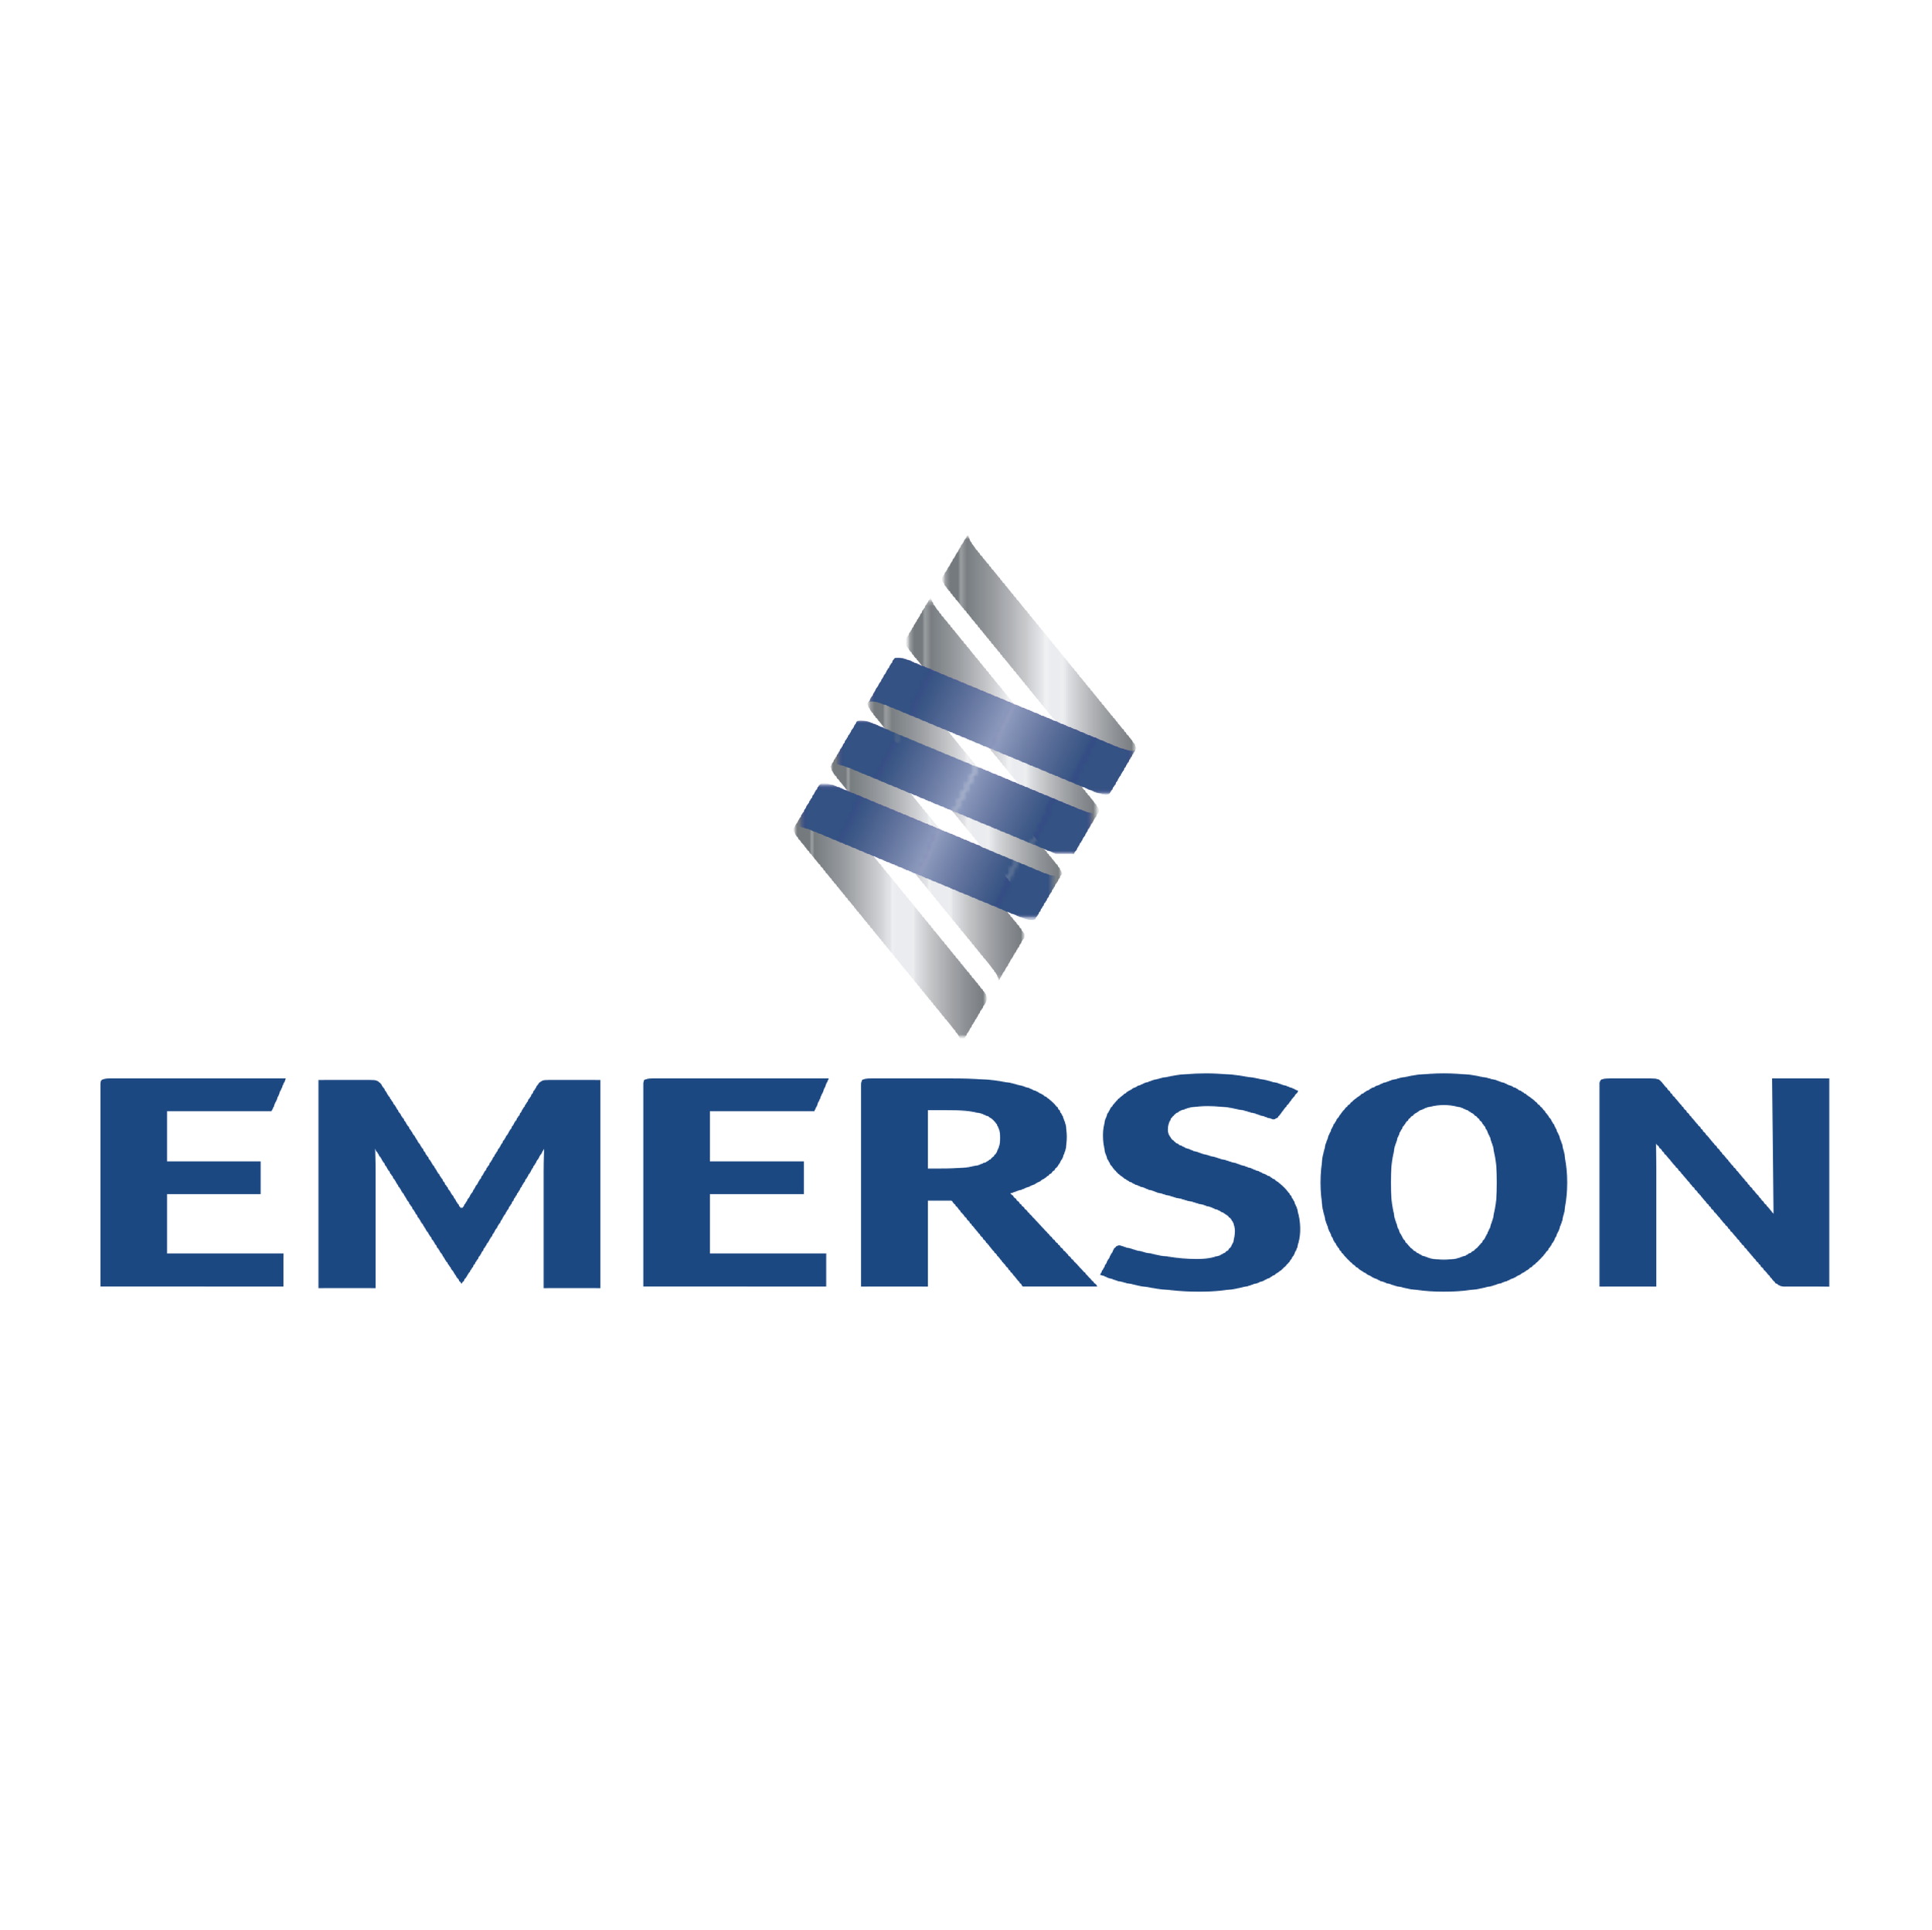 emerson.png